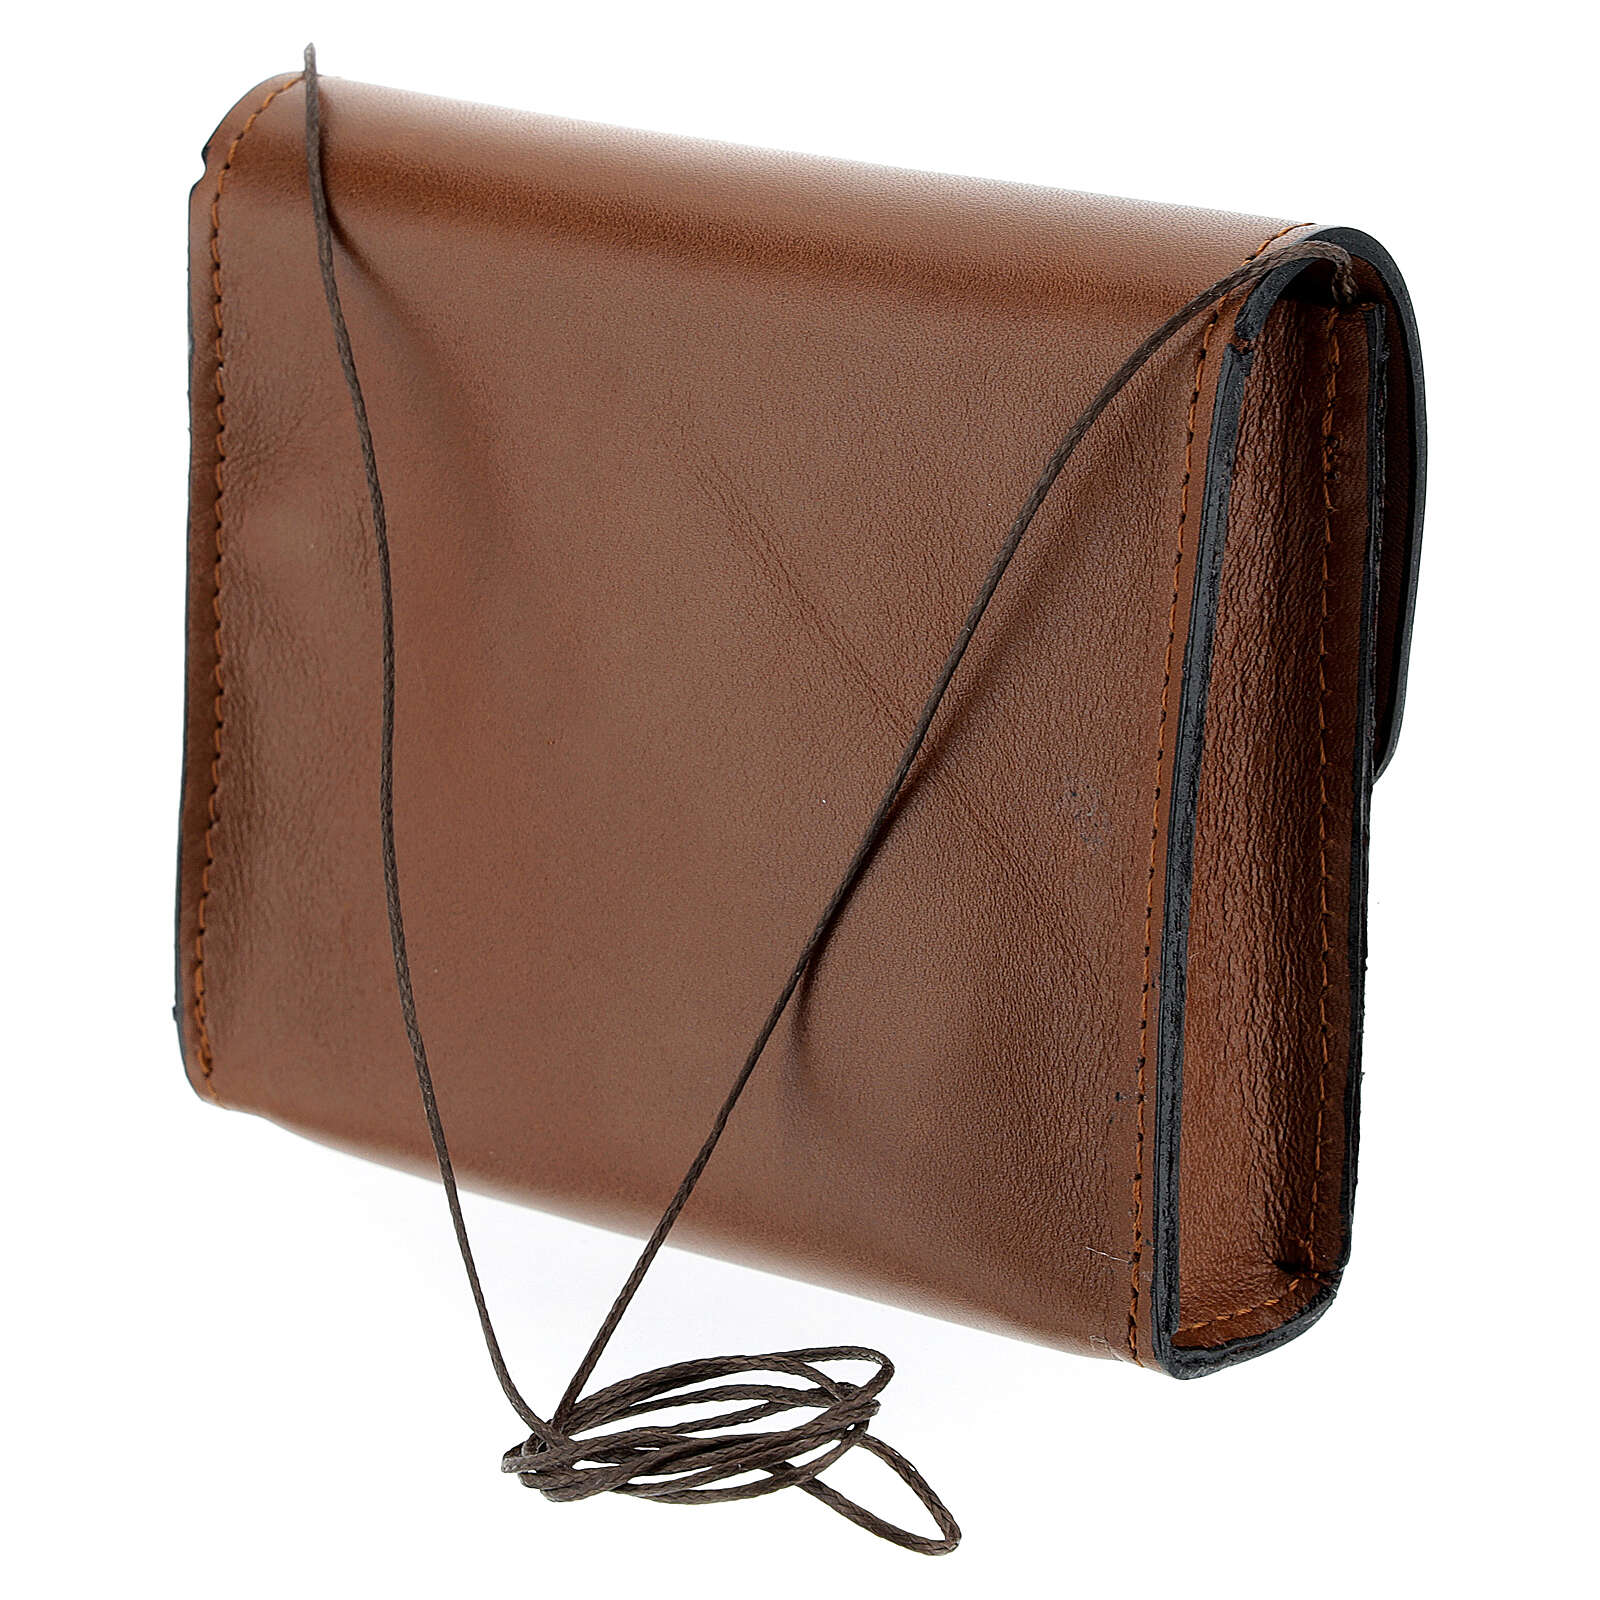 Paten bag 10x12 cm in brown leather 4